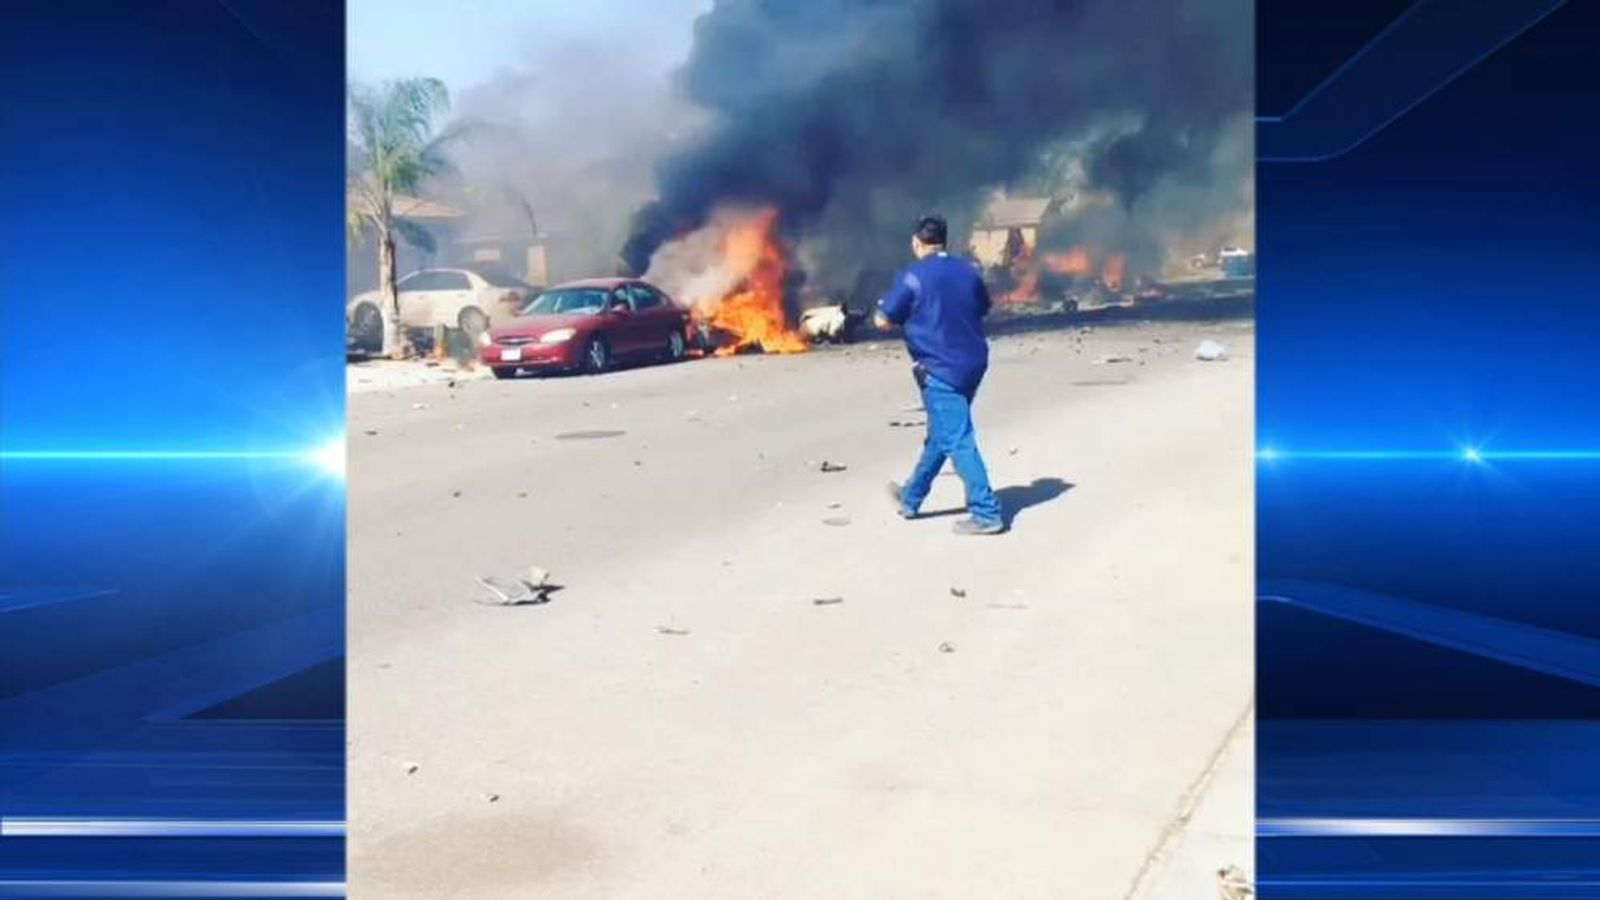 The aftermath in a southern California neighbourhood following a jet crash.